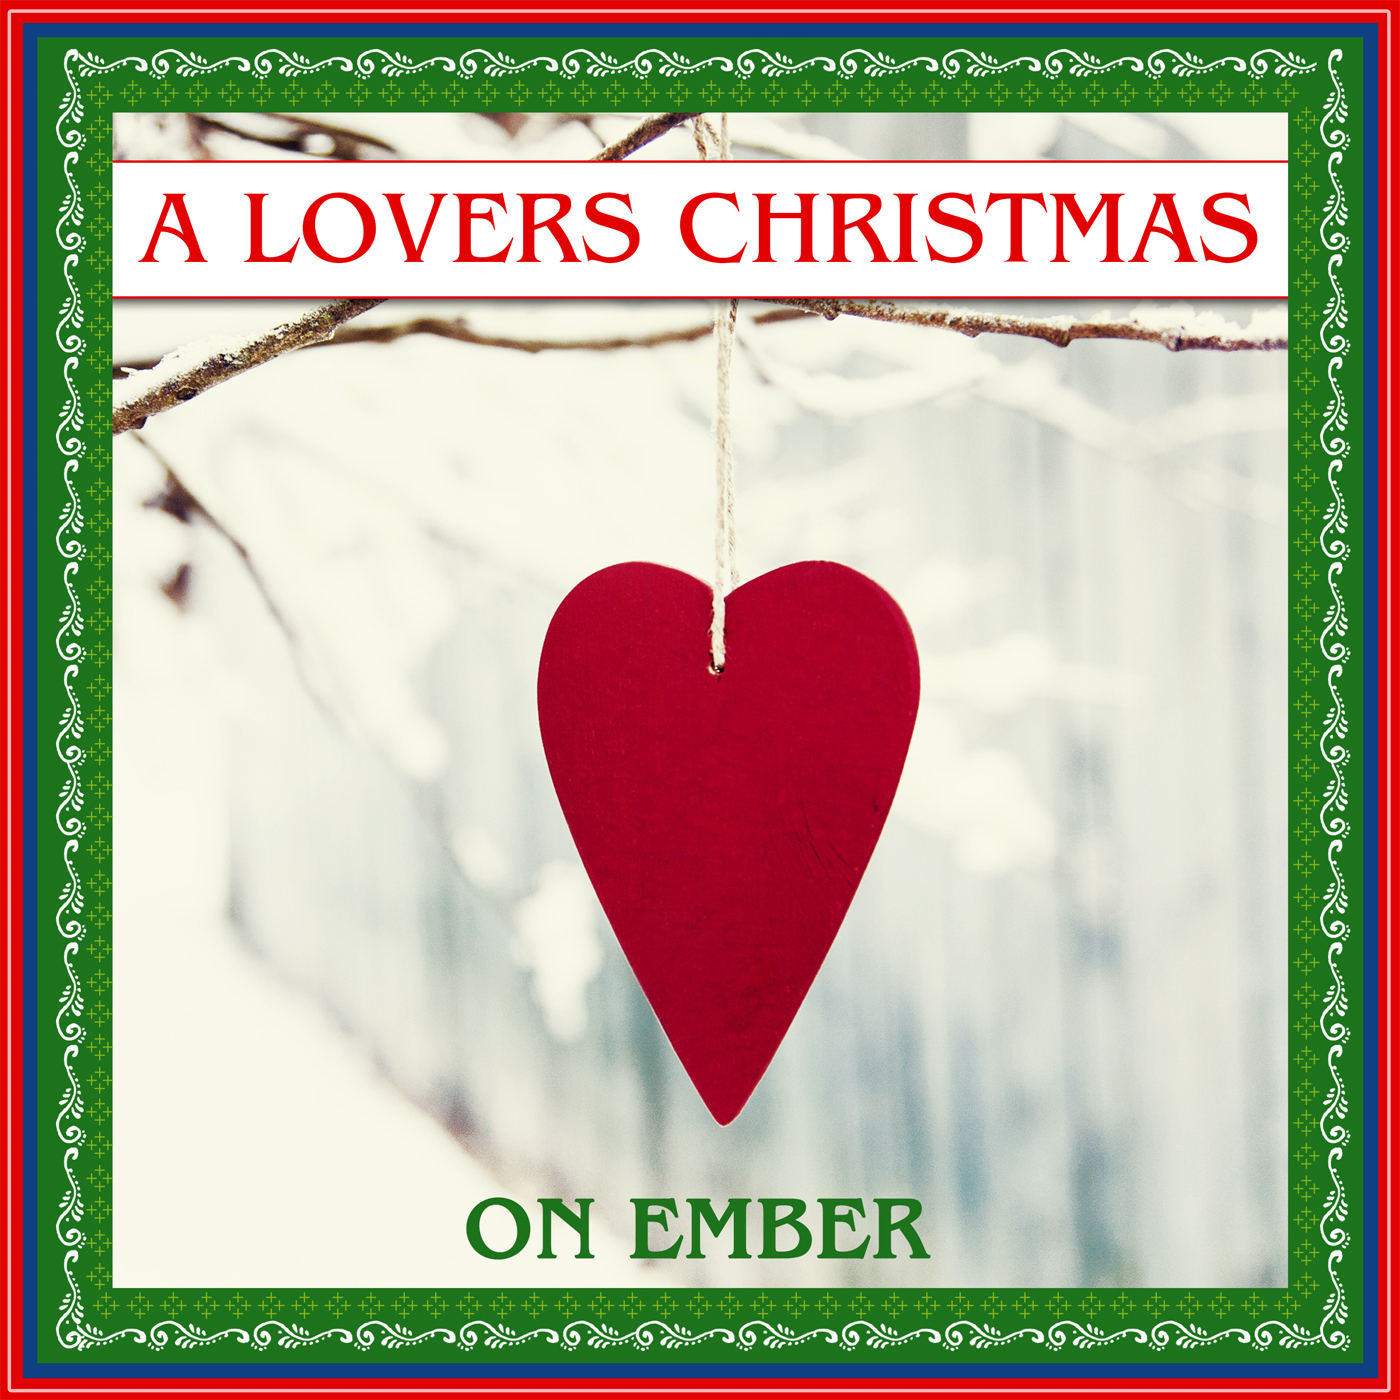 On Ember Feat. Blend - A Lovers Christmas